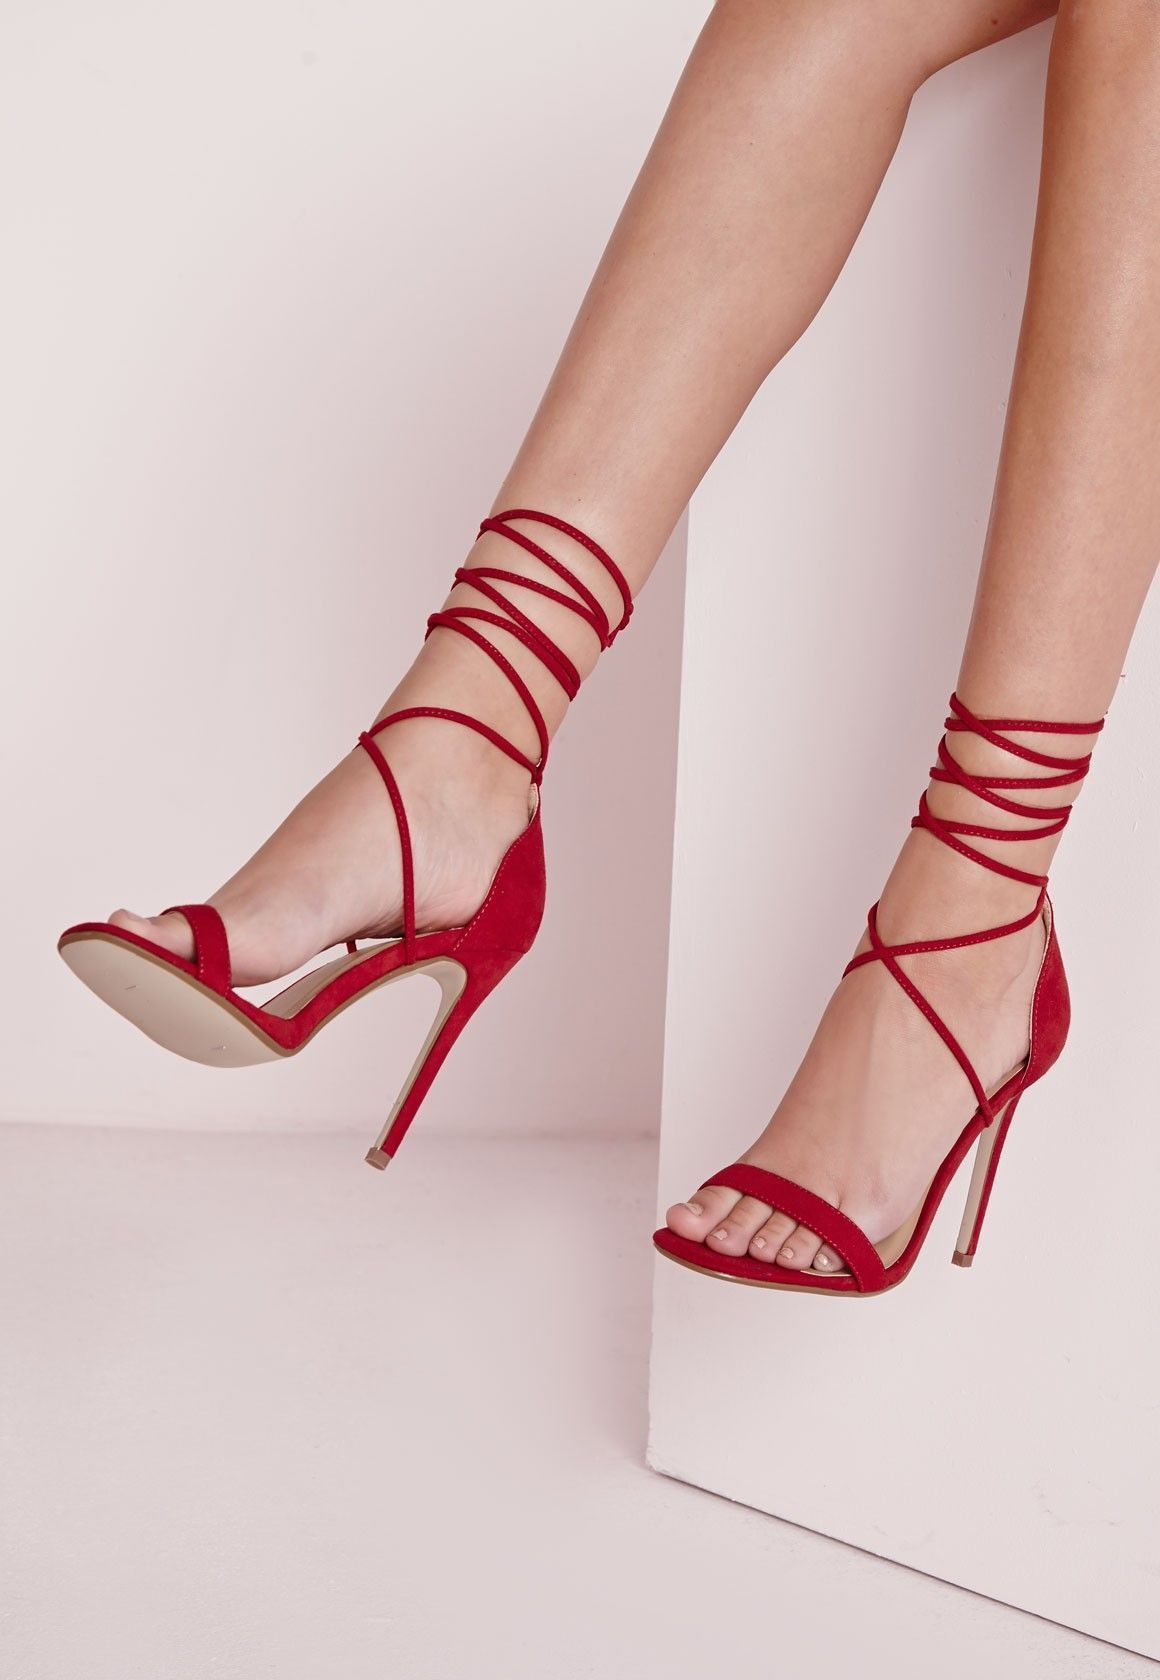 e8f90fc73fe9 Lace Up Barely There Heeled Sandals Red - Shoes - High Heels - Missguided   weddingshoes